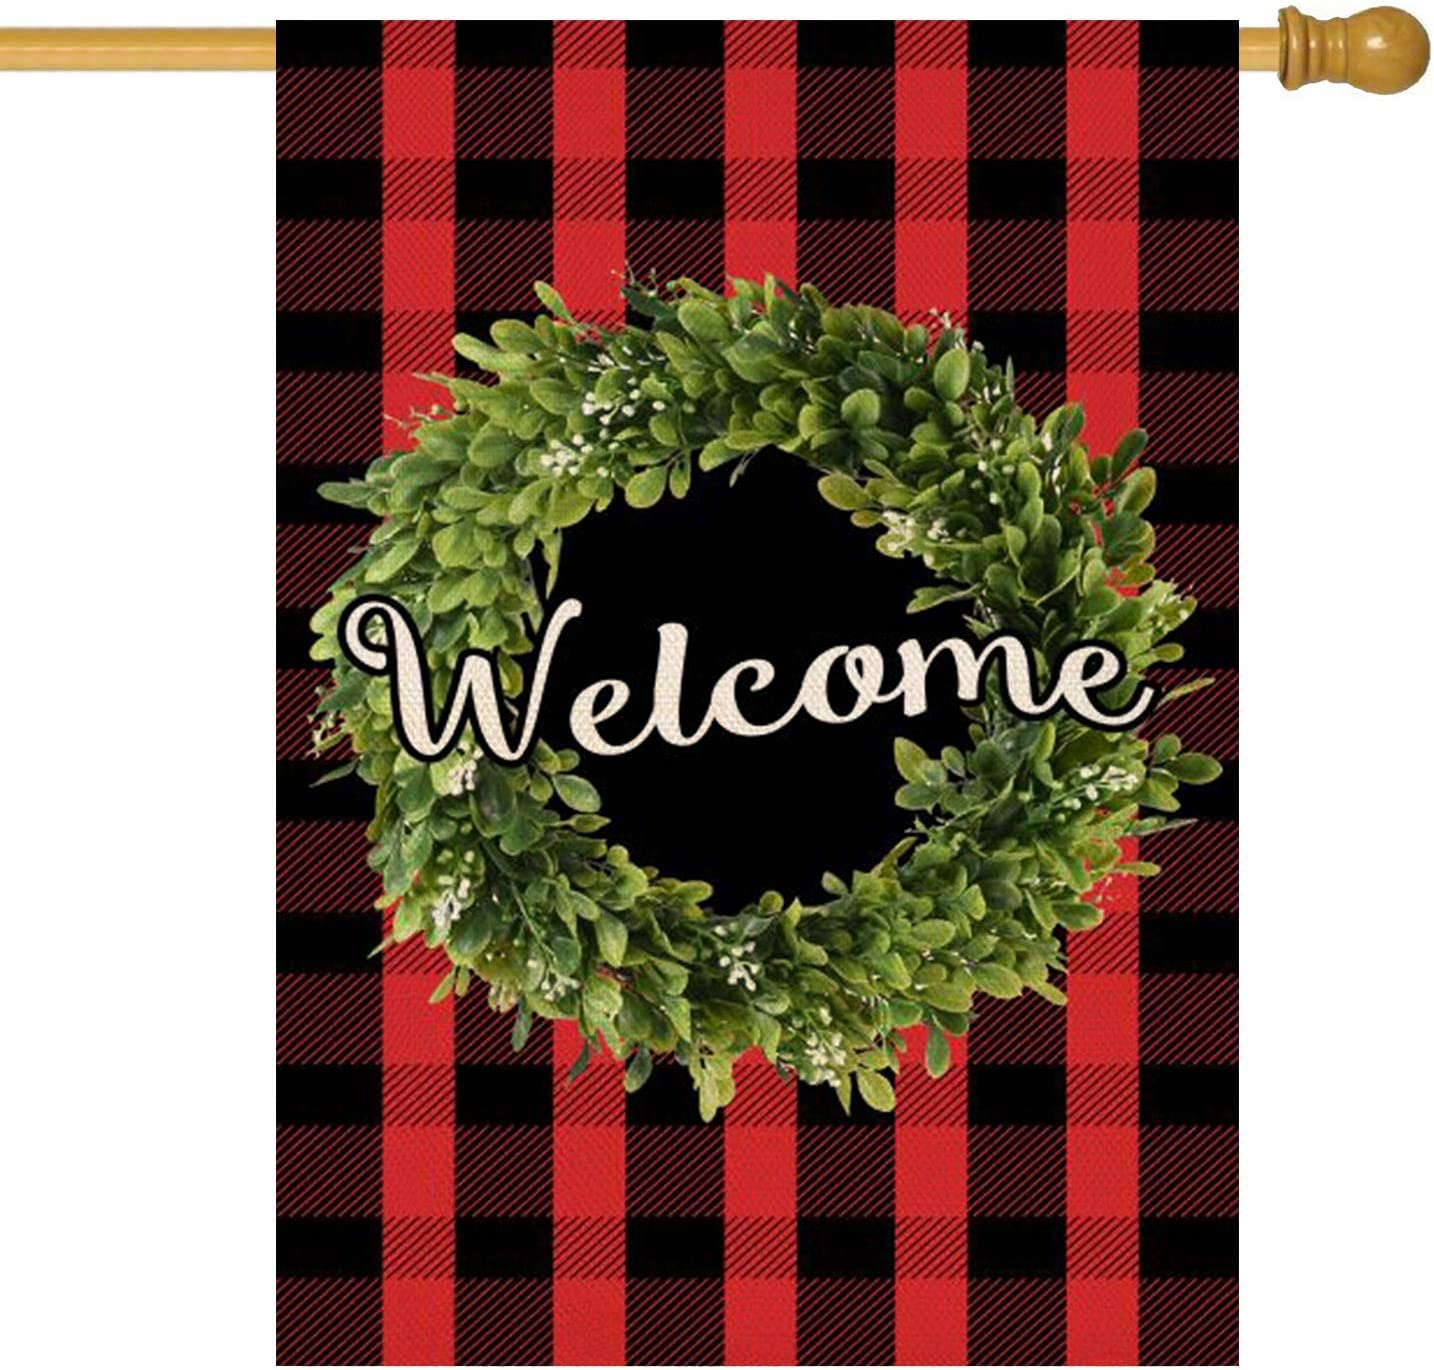 ORTIGIA Welcome Christmas Boxwood Wreath Garden House Flag Vertical Double Sided,Fall Red Buffalo Check Plaid Rustic Farmhouse Burlap Flag Yard Outdoor Decoration,Seasonal Outdoor Flag 28 x 40inch